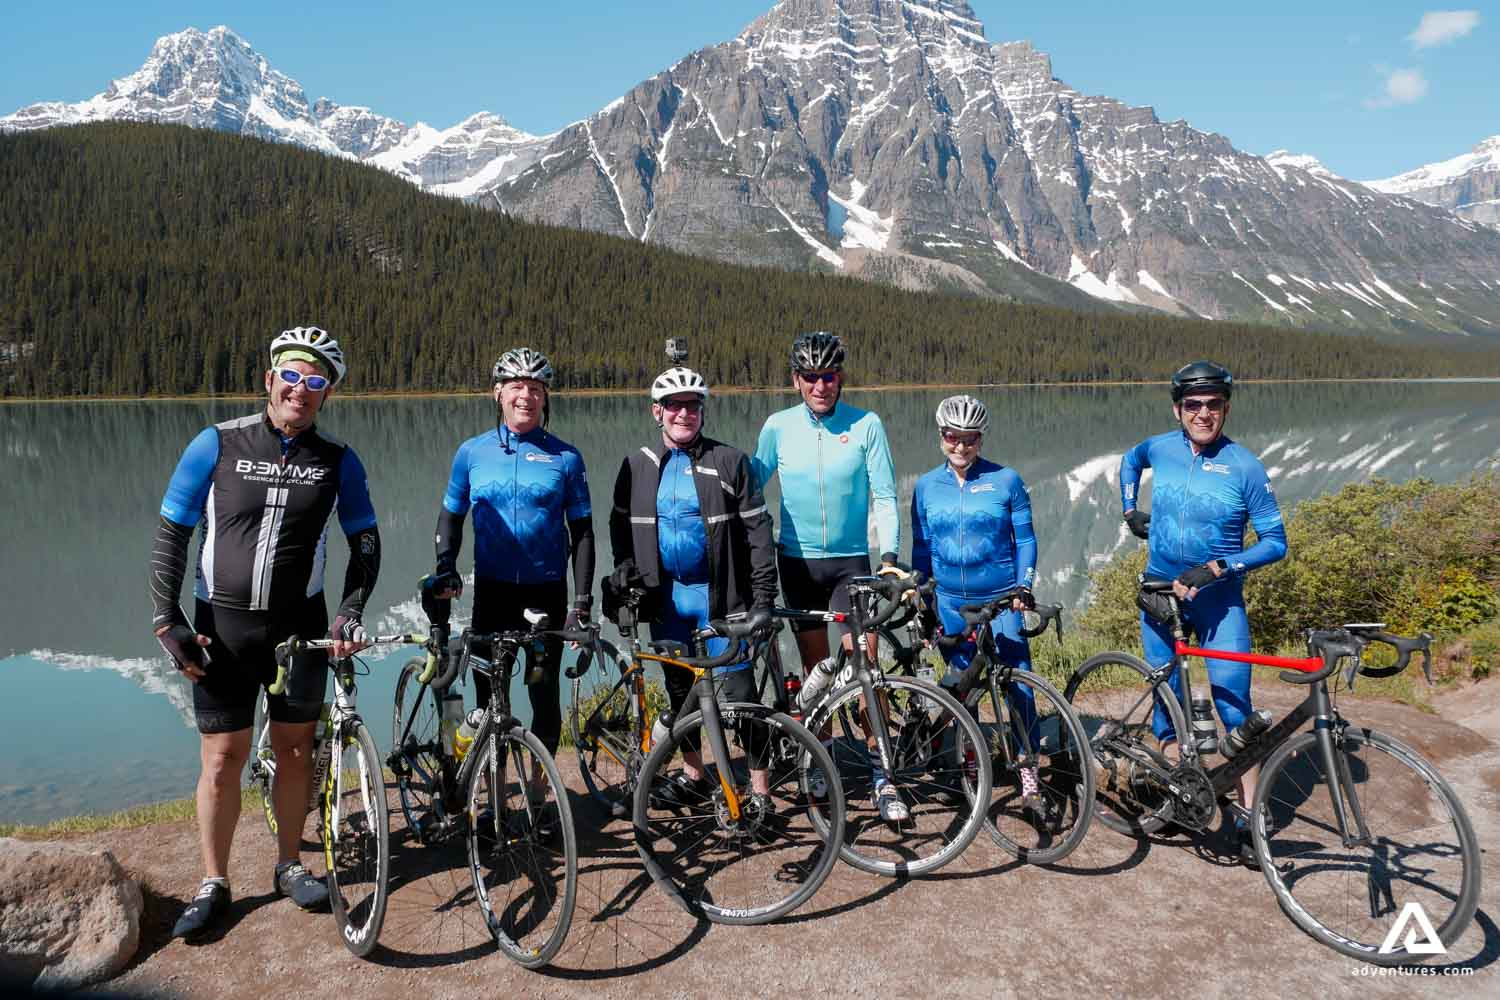 Bicycle tour in the Rockies